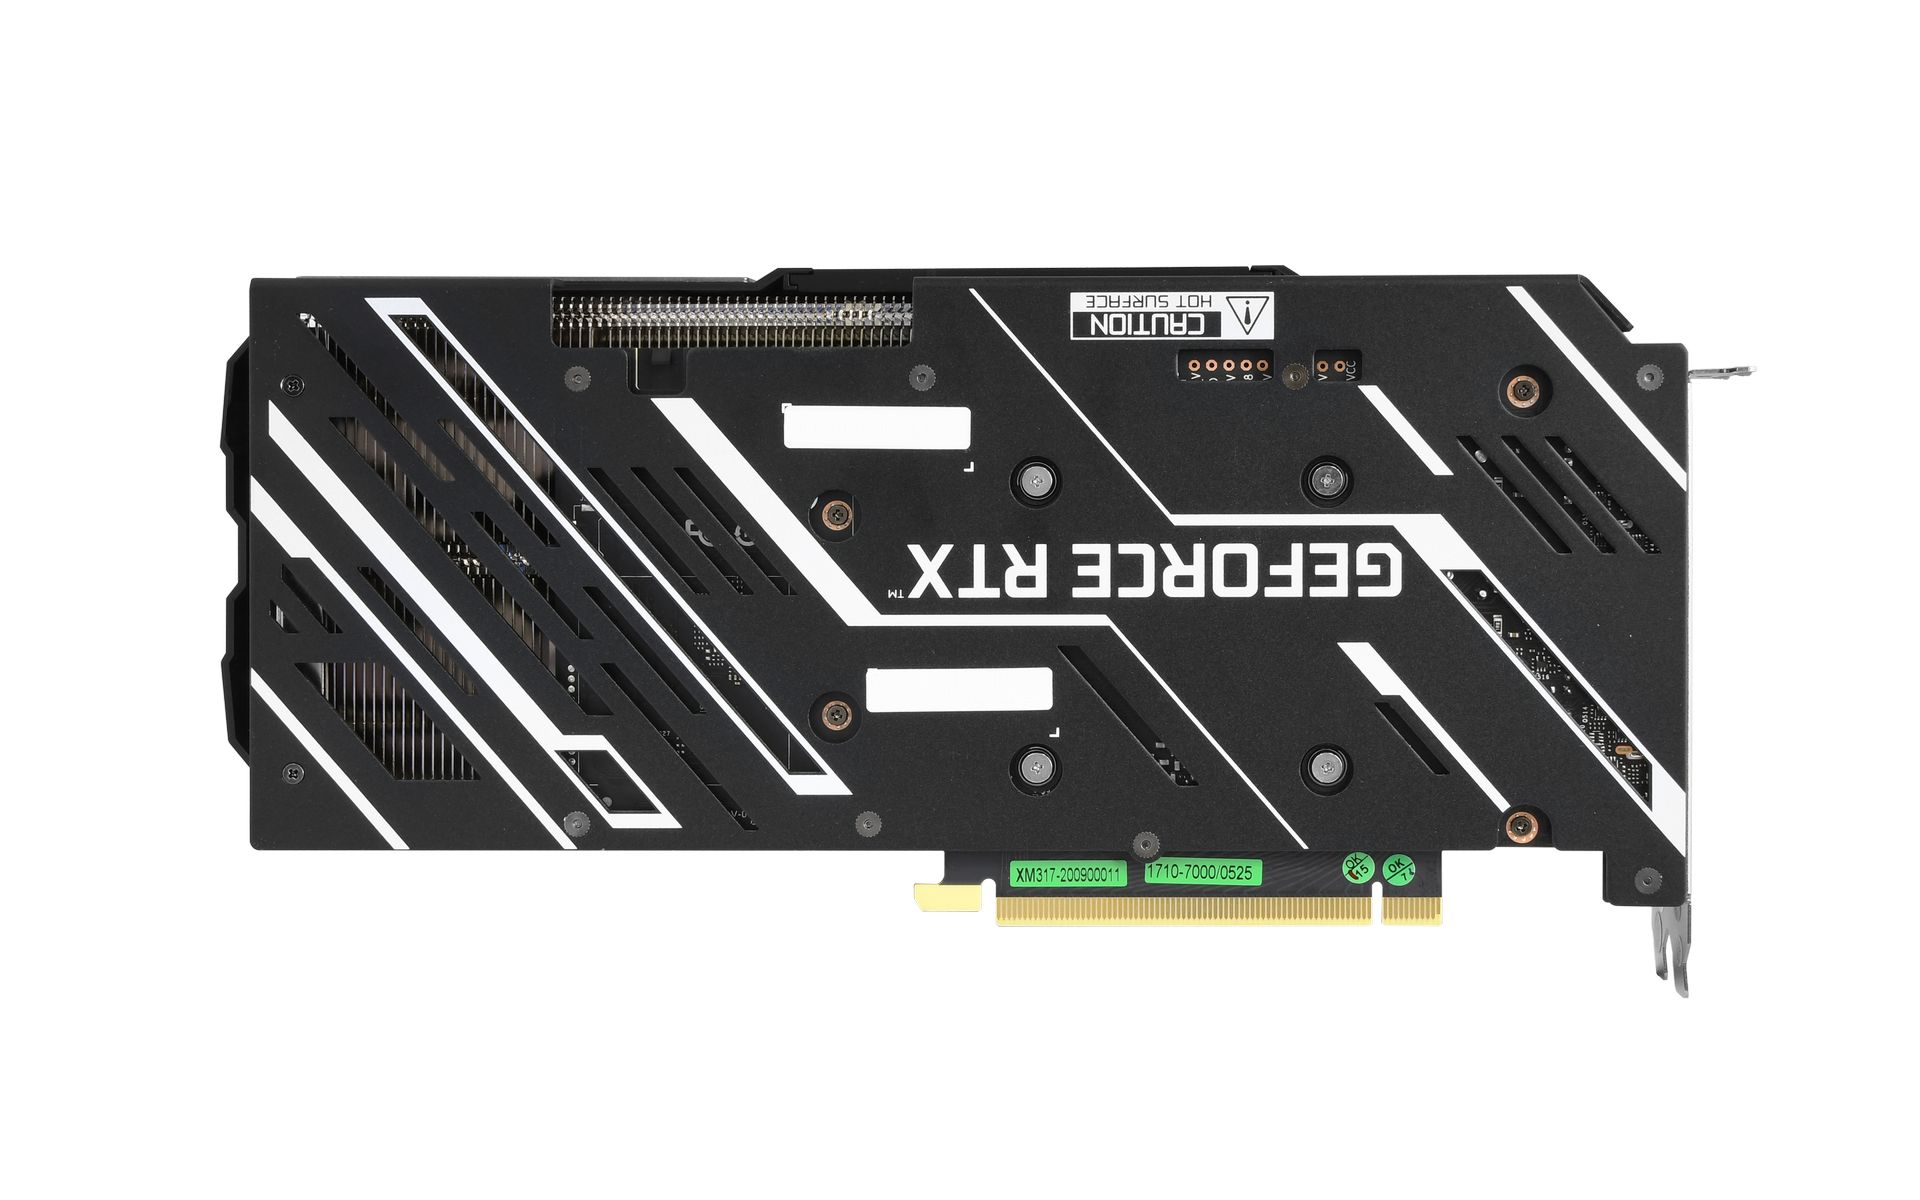 GALAX RTX 3060 Ti 8GB EX Black (1-Click OC) back